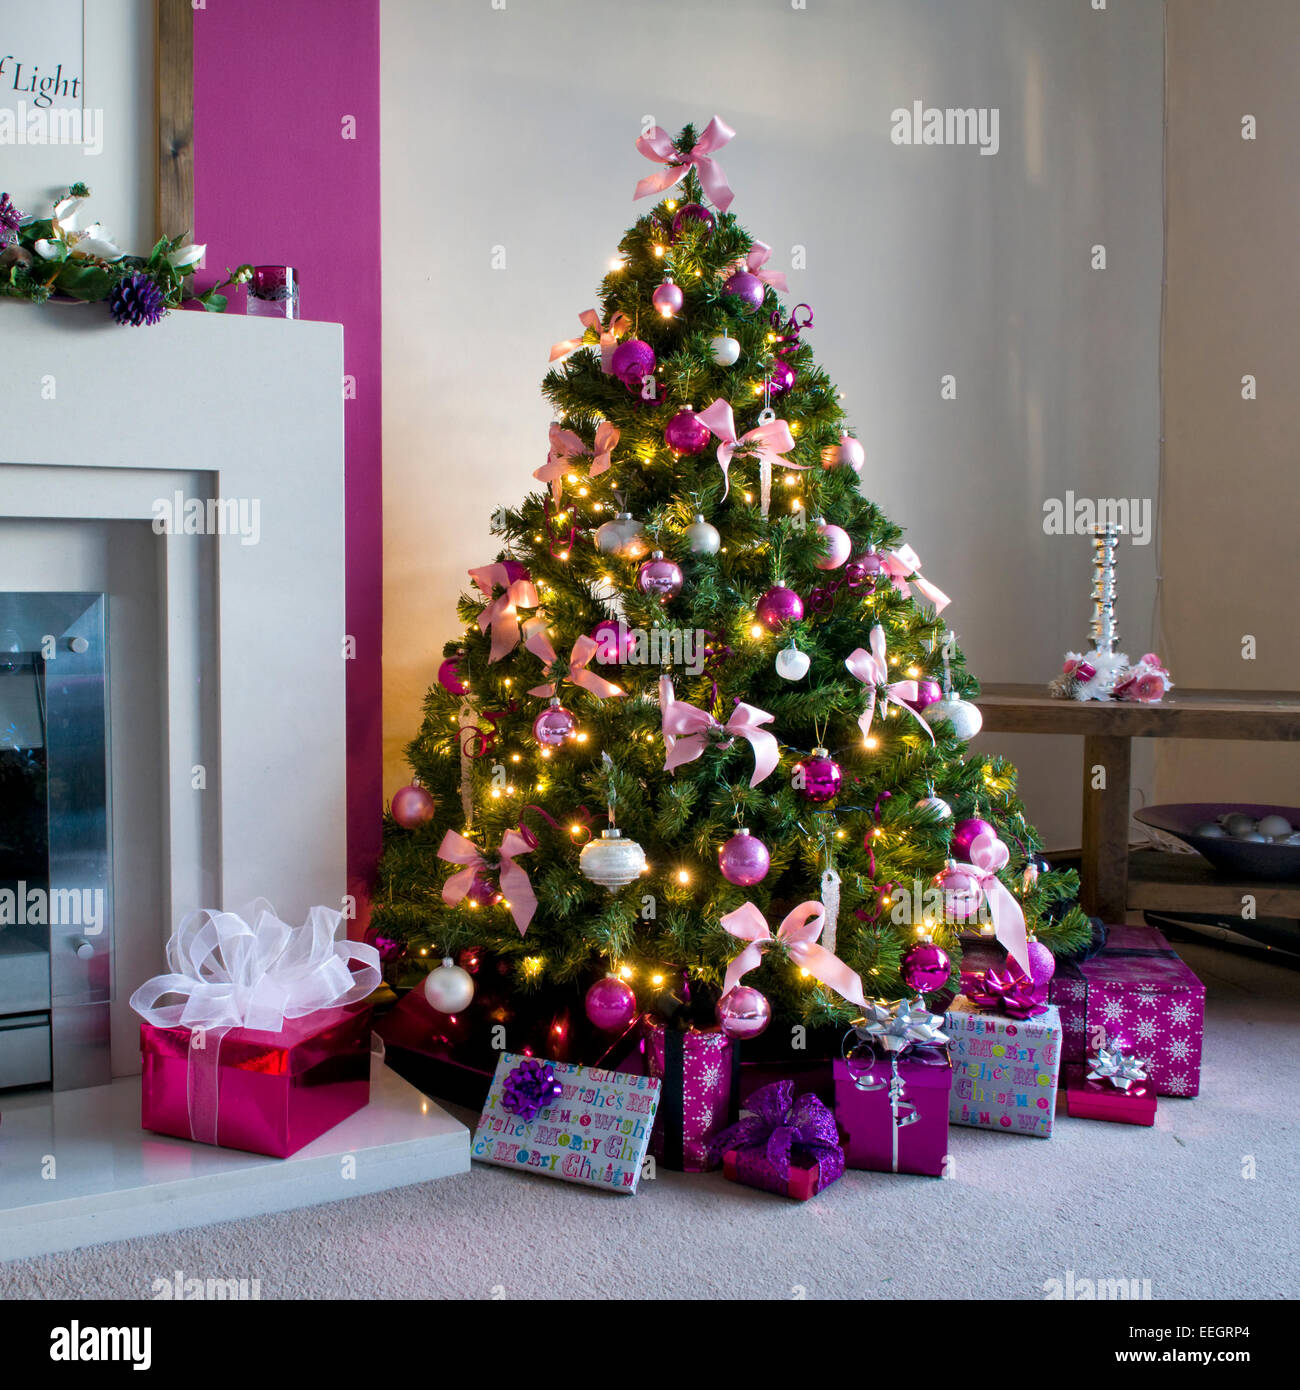 geschm ckter weihnachtsbaum in rosa und wei en design stockfoto bild 77816540 alamy. Black Bedroom Furniture Sets. Home Design Ideas